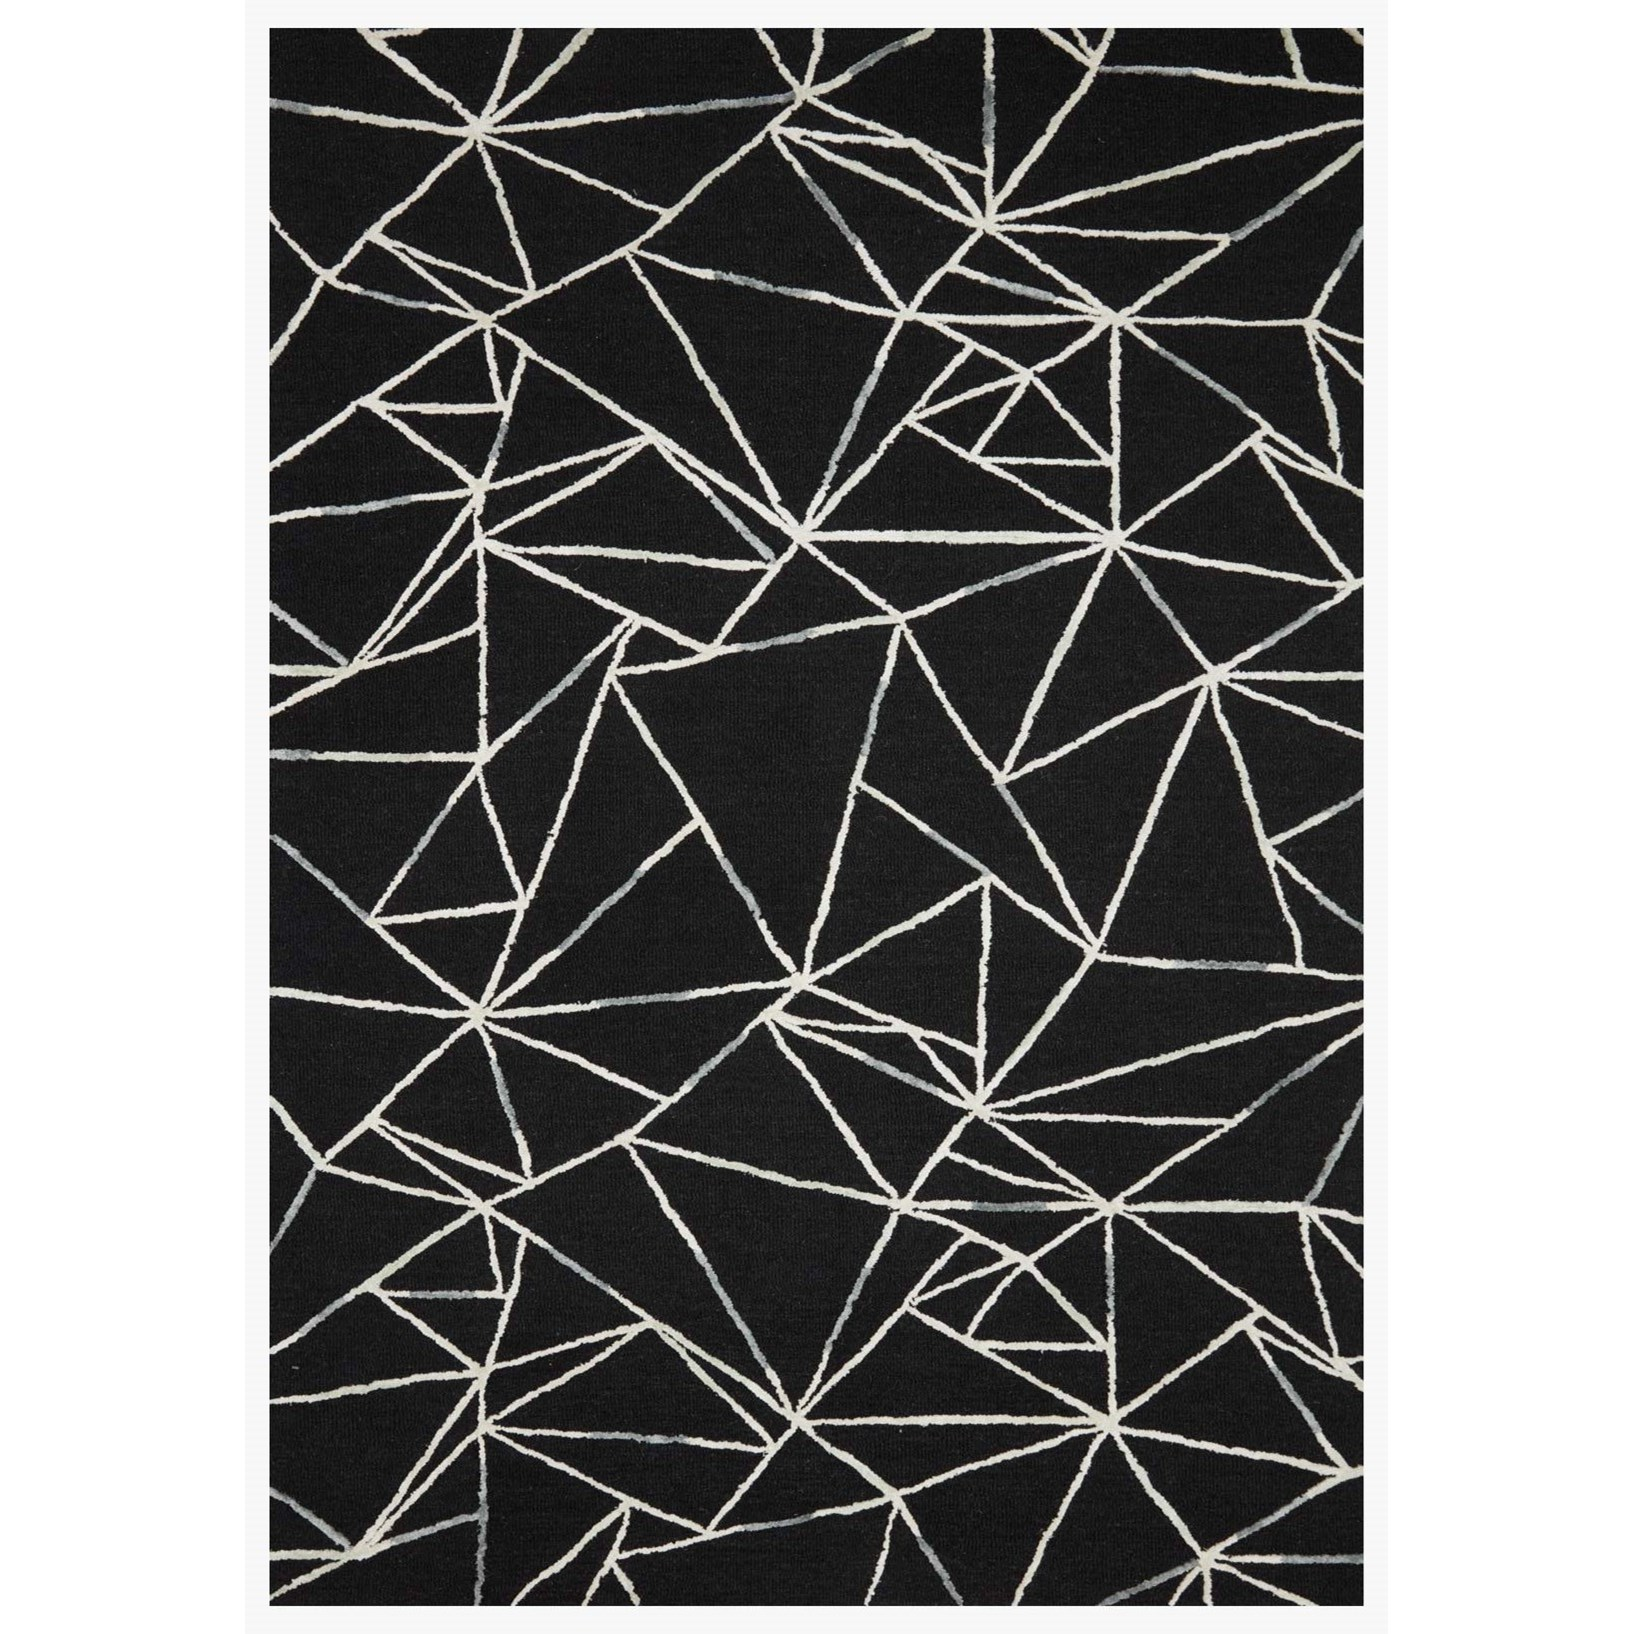 "Verve 5'0"" x 7'6"" Black / Ivory Rug by Loloi Rugs at Sprintz Furniture"